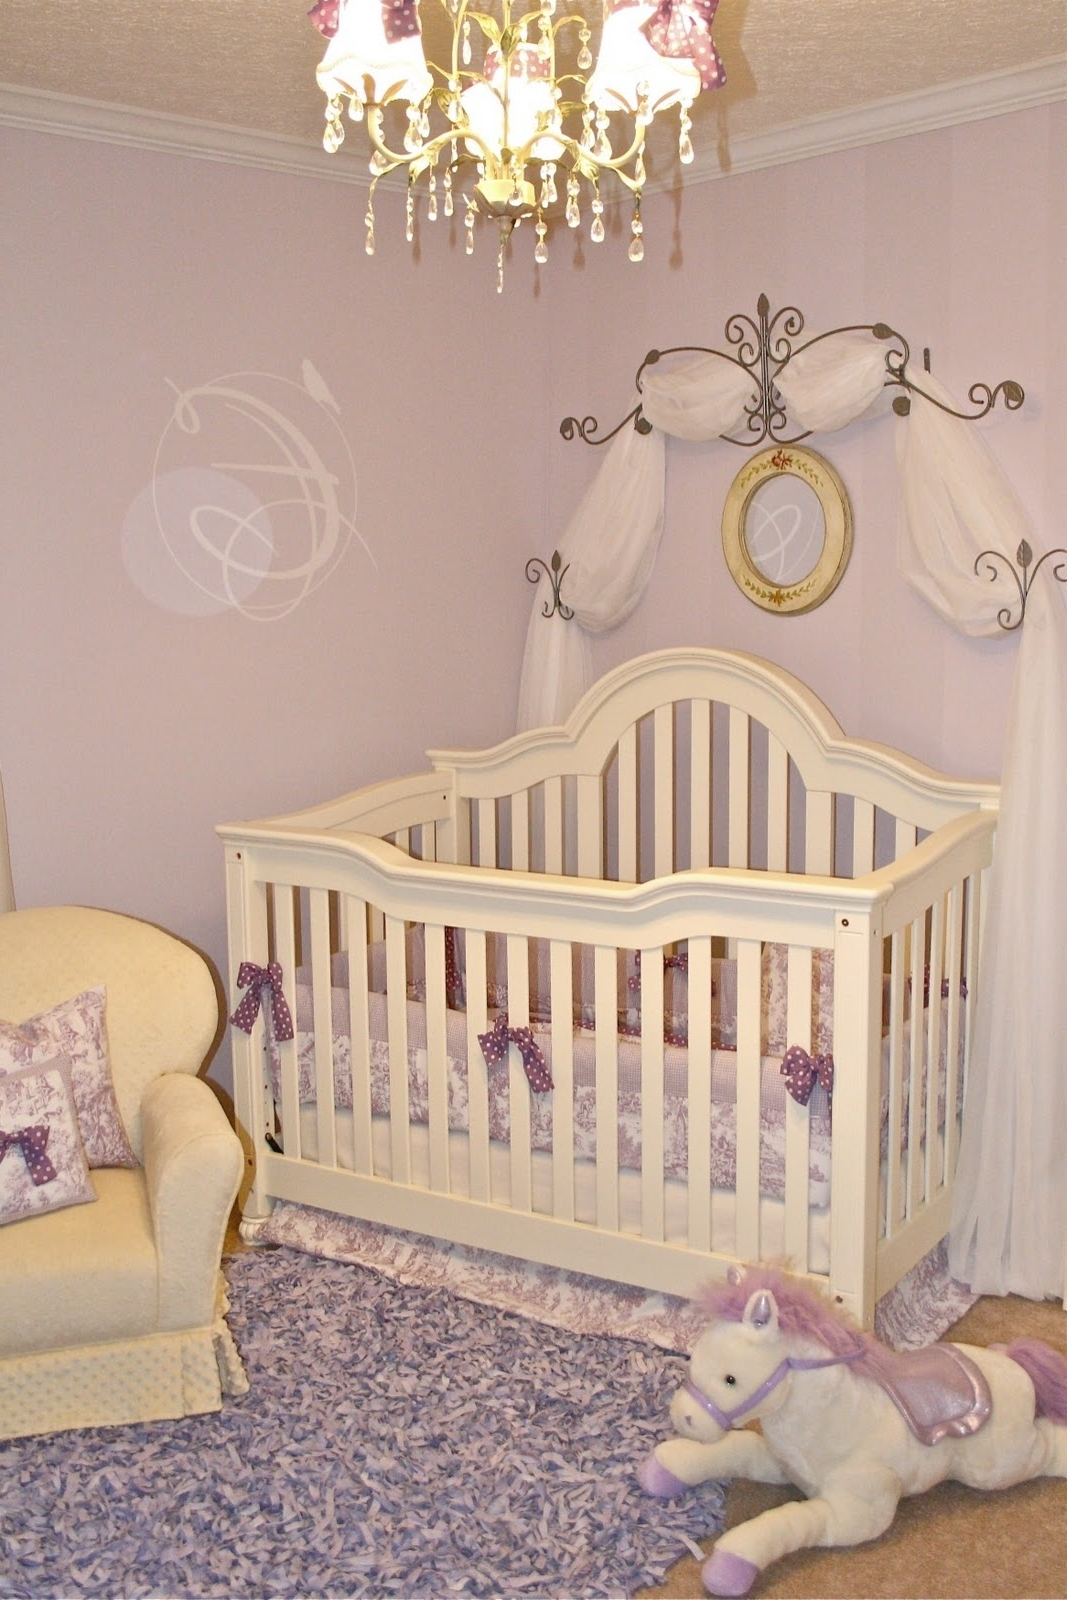 2018 Chandeliers For Baby Girl Room With Regard To Luxury Baby Girl Room Chandelier For Your Budget Home Interior (View 3 of 15)